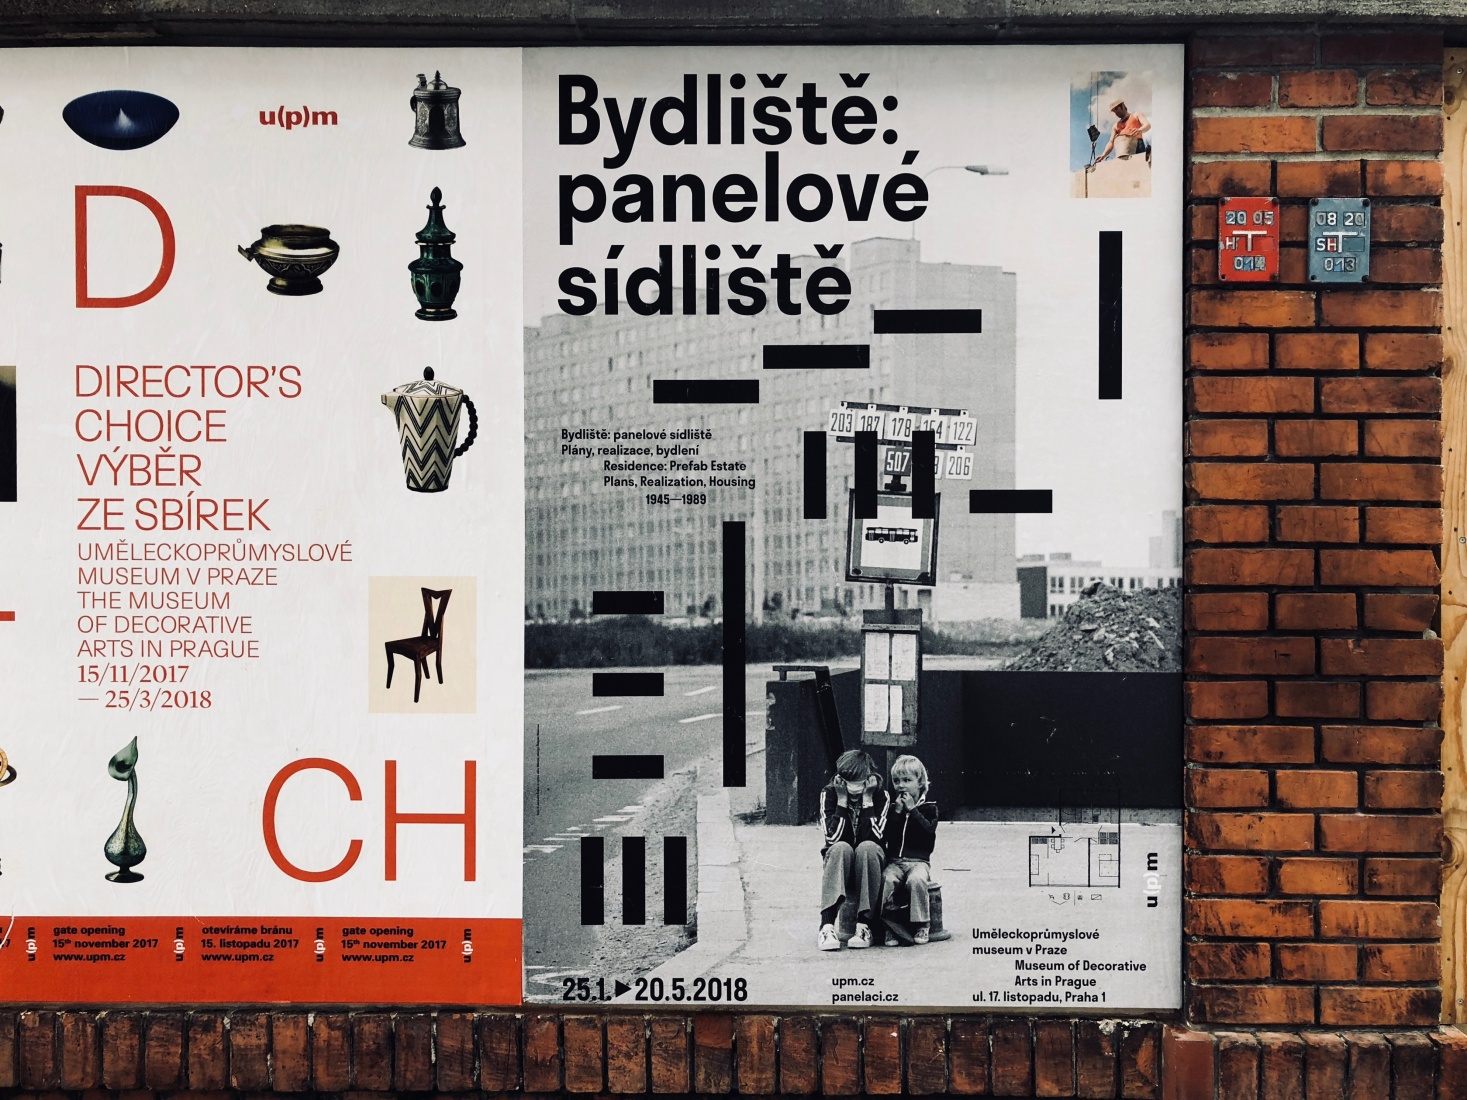 Advertisement for the Museum of Decorative Arts' in Prague, Czech Republic.